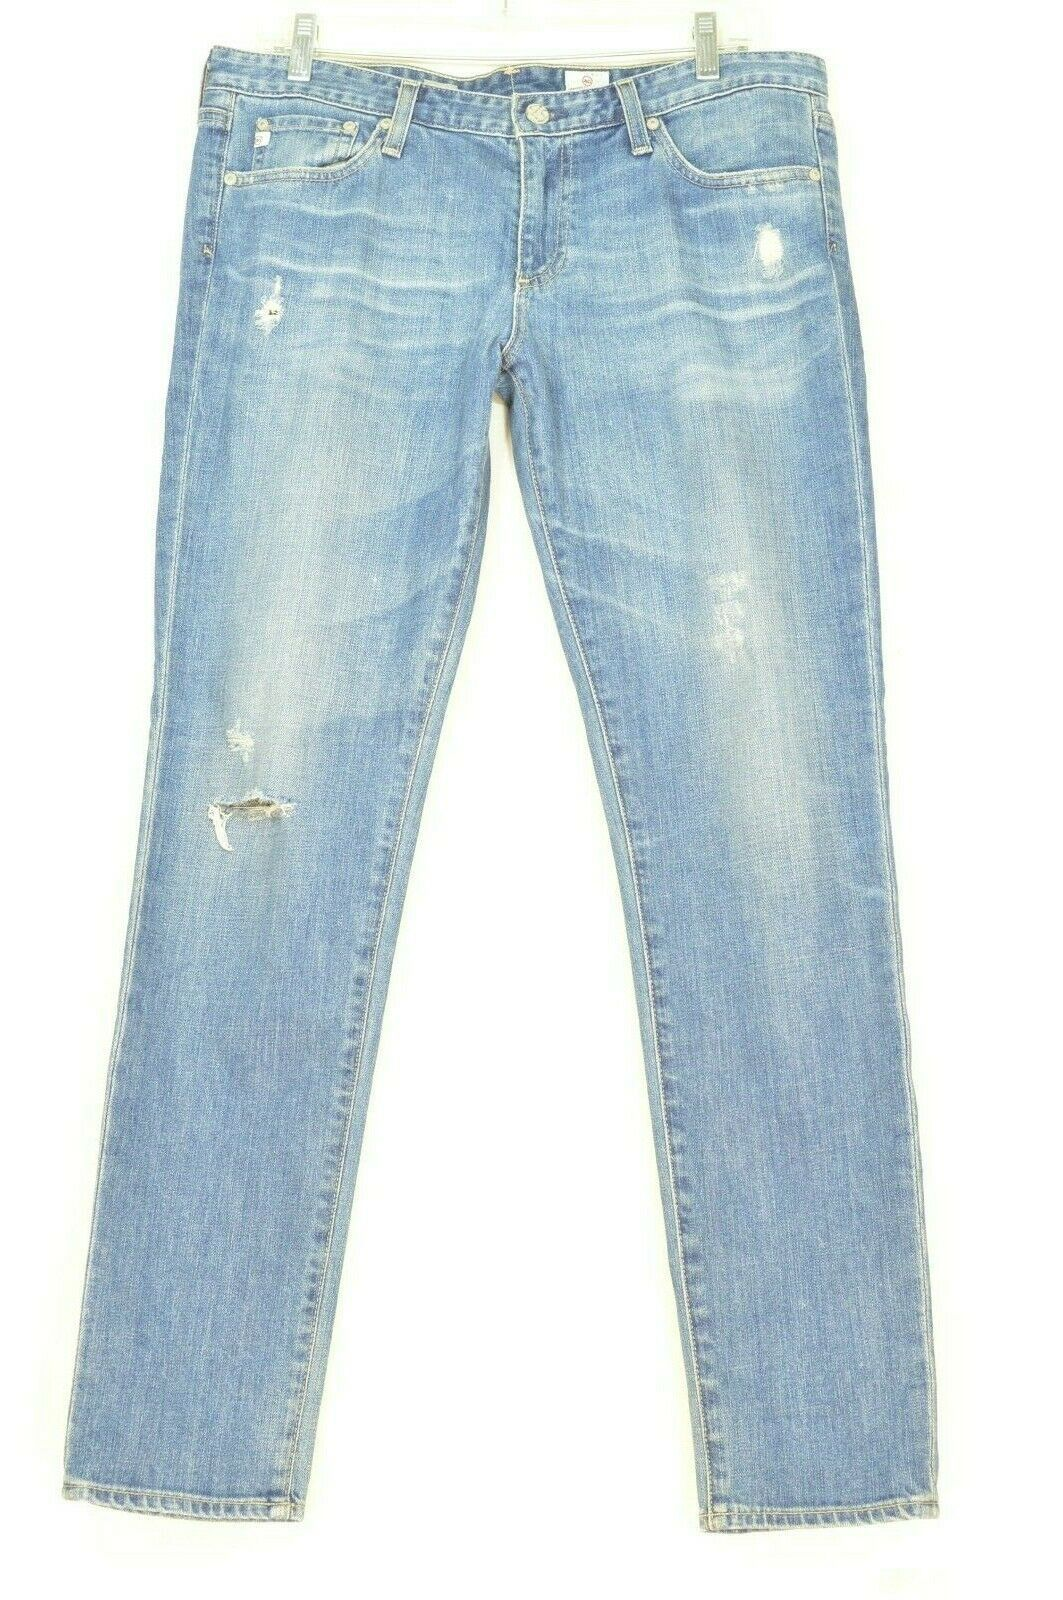 AG Adriano Goldschmied jeans 31 x 31 Stilt cigarette leg 17Y - SVT destroyed USA image 9